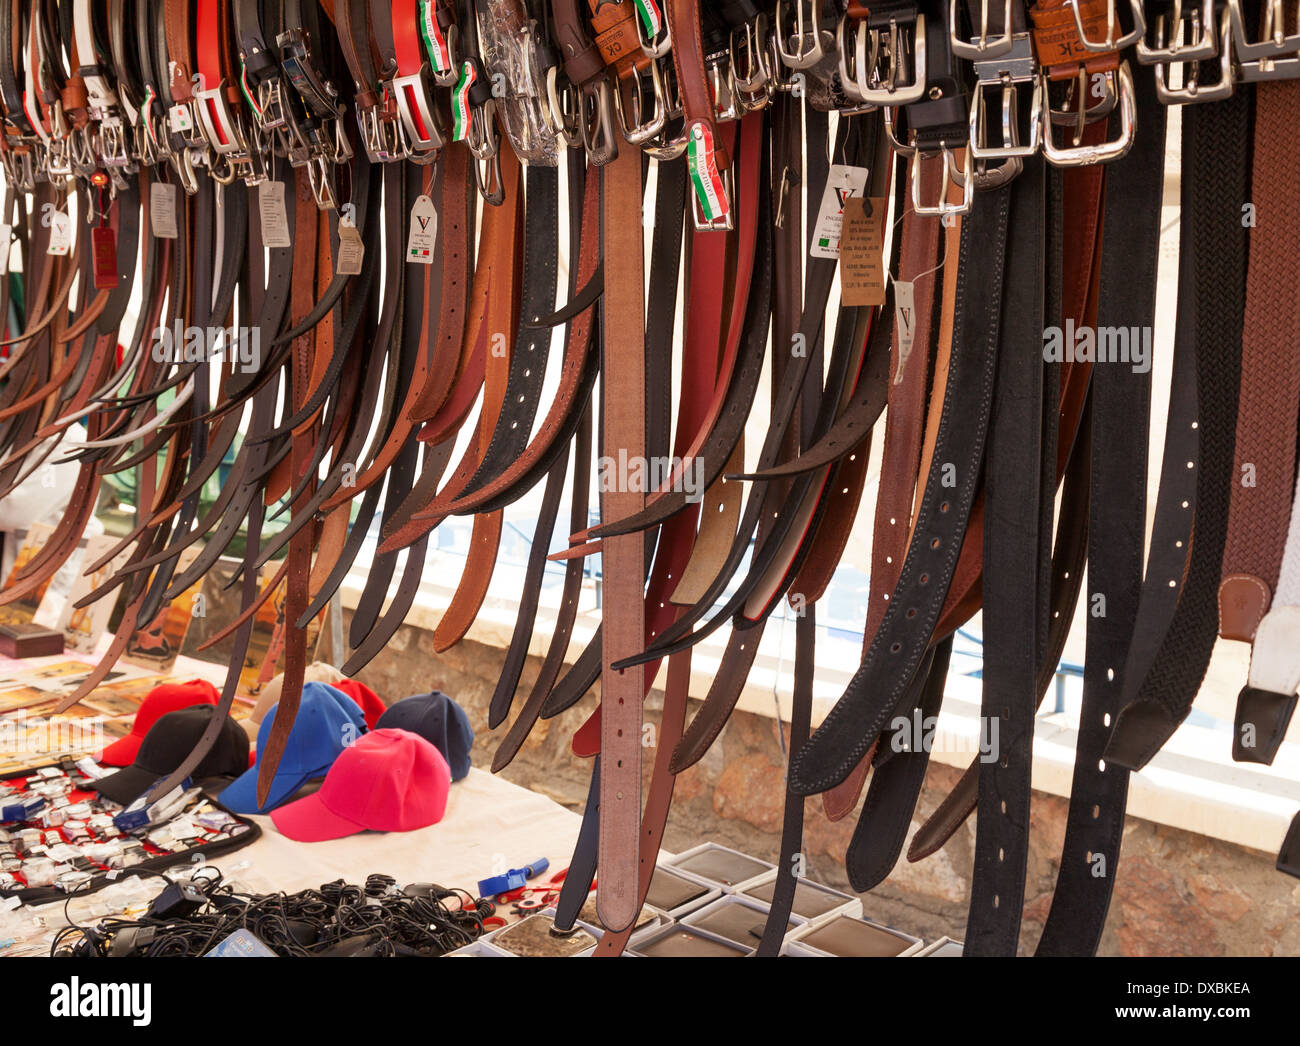 Leather belts for sale in Villaricos village market, Almeria Andalusia, Spain Europe - Stock Image